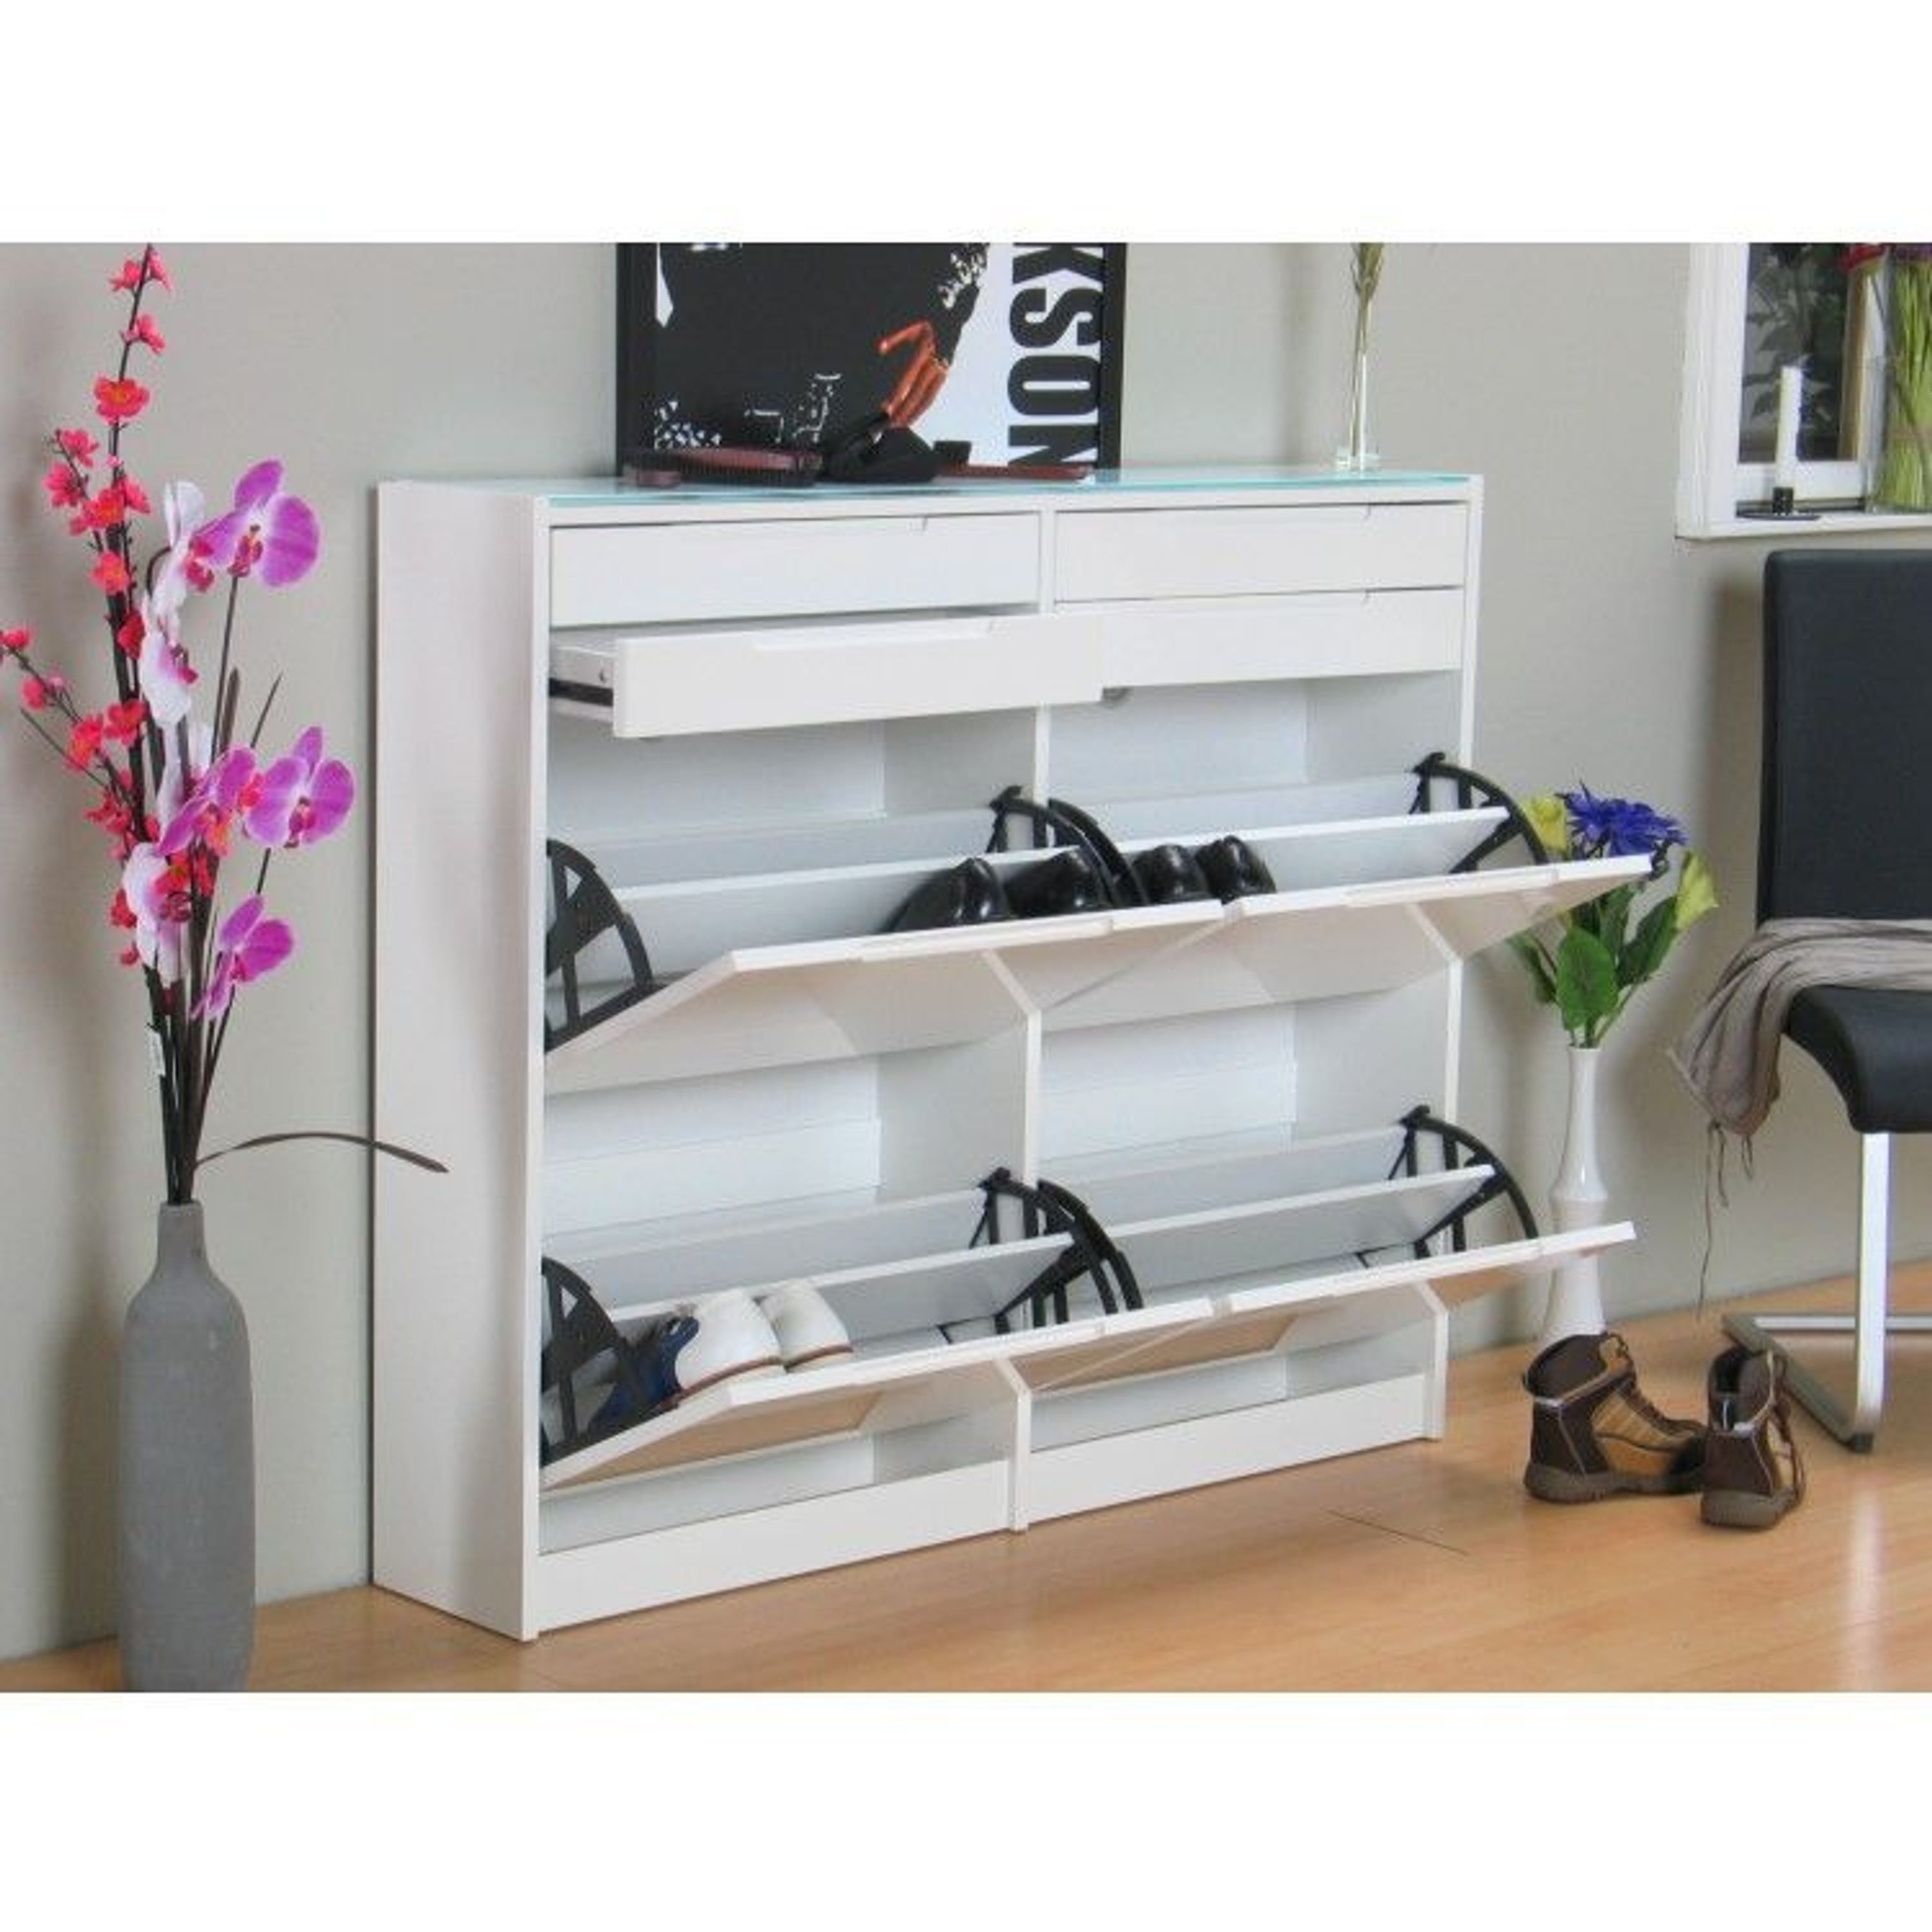 schuhschrank berlin schuhkipper schuh ablage schrank wei. Black Bedroom Furniture Sets. Home Design Ideas